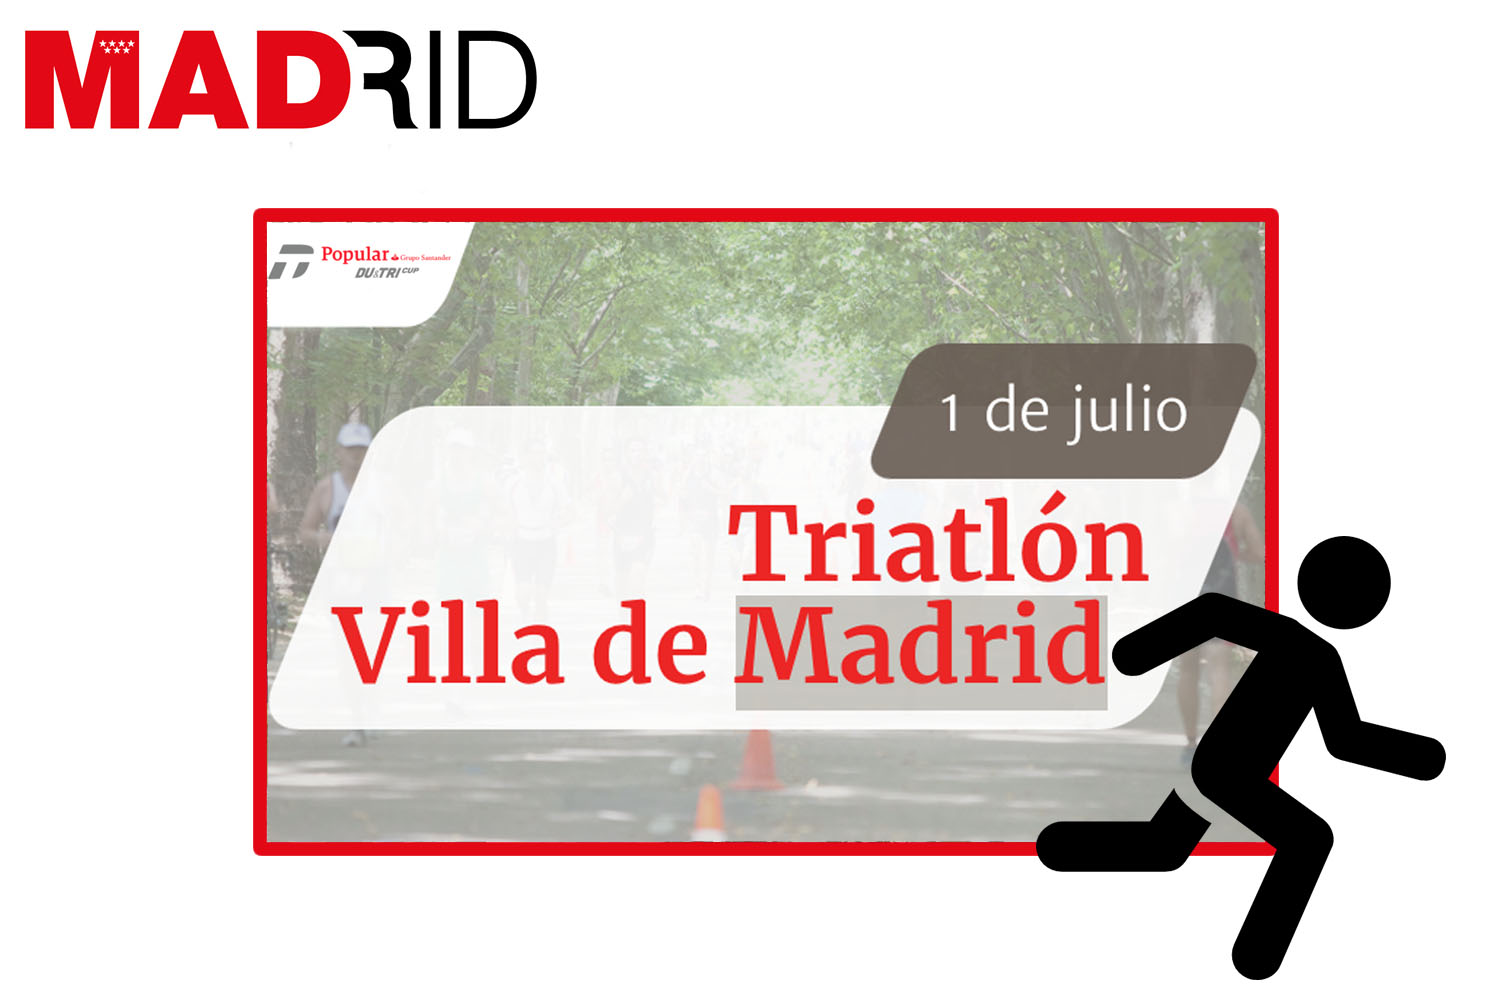 Triatlón Villa de Madrid